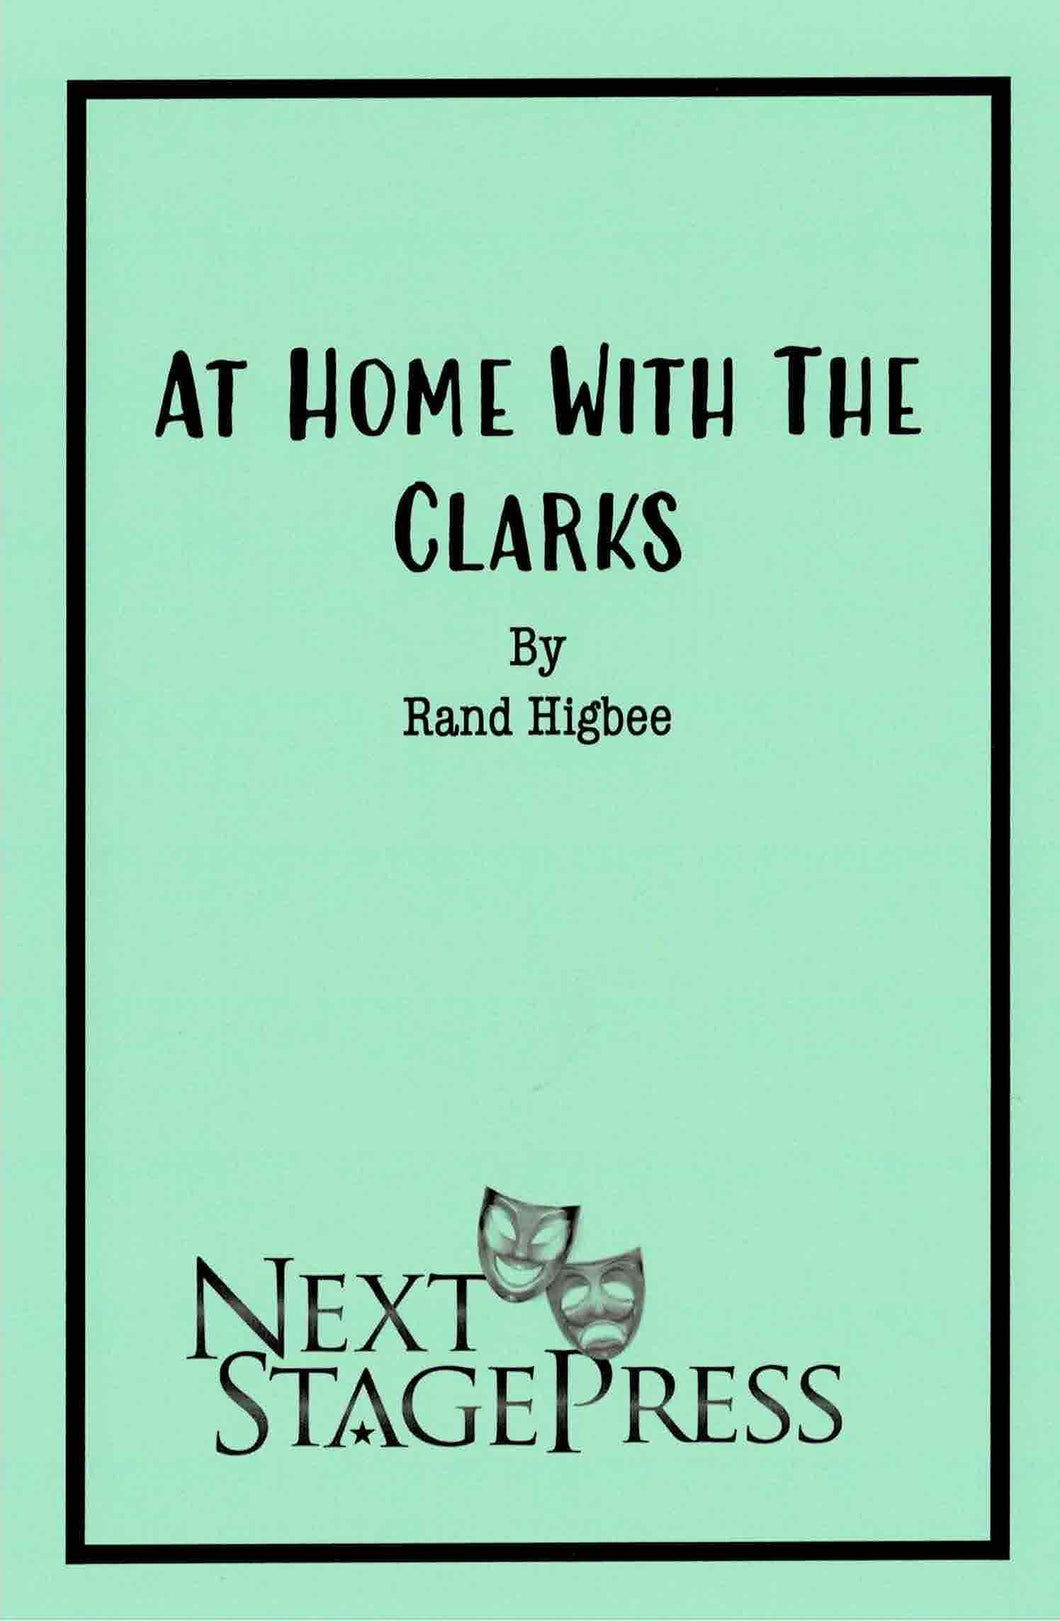 At Home With the Clarks